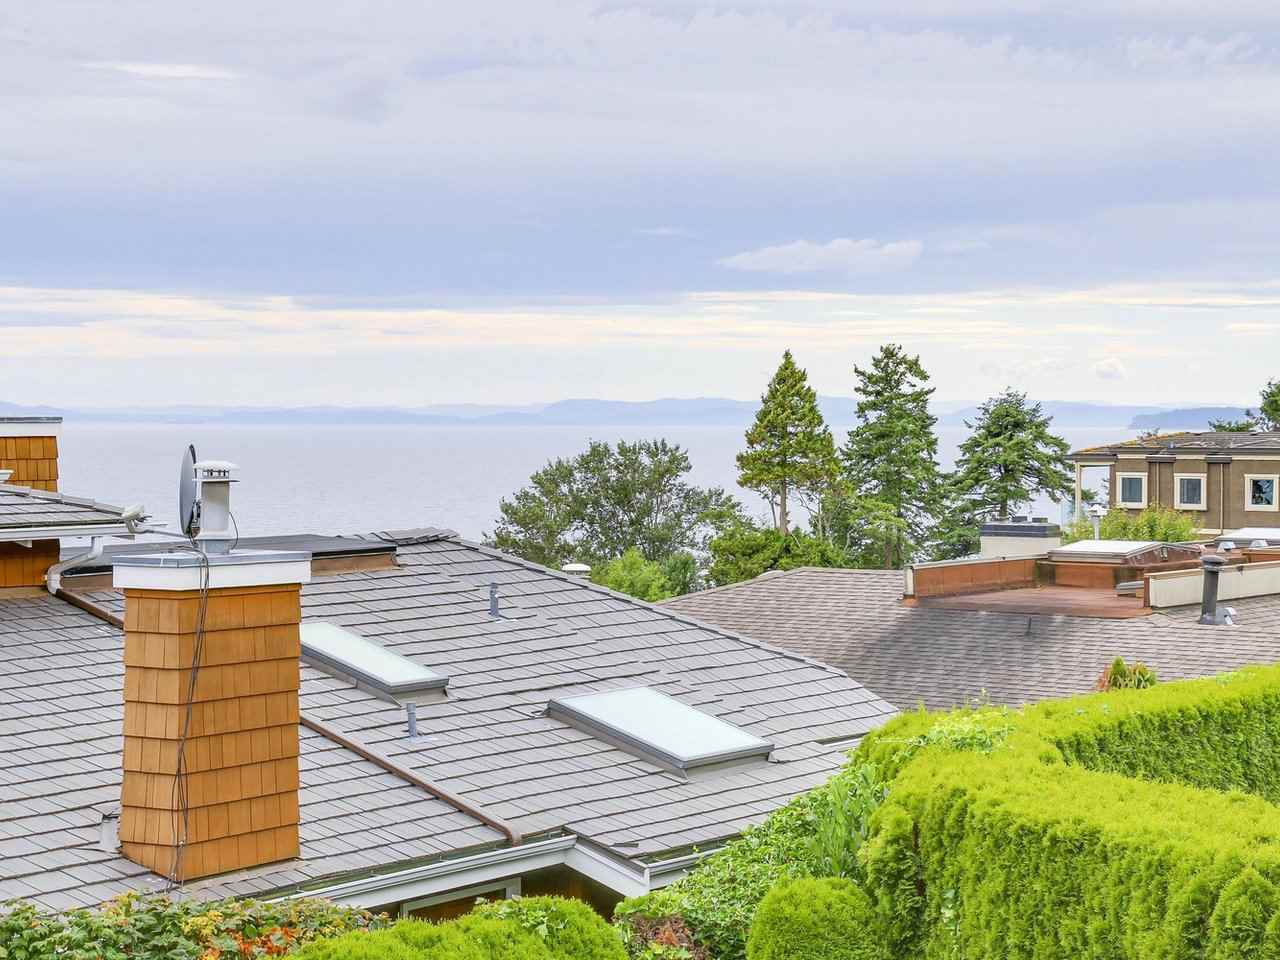 Photo 11: Photos: 1325 132B Street in Surrey: Crescent Bch Ocean Pk. House for sale (South Surrey White Rock)  : MLS®# R2185643